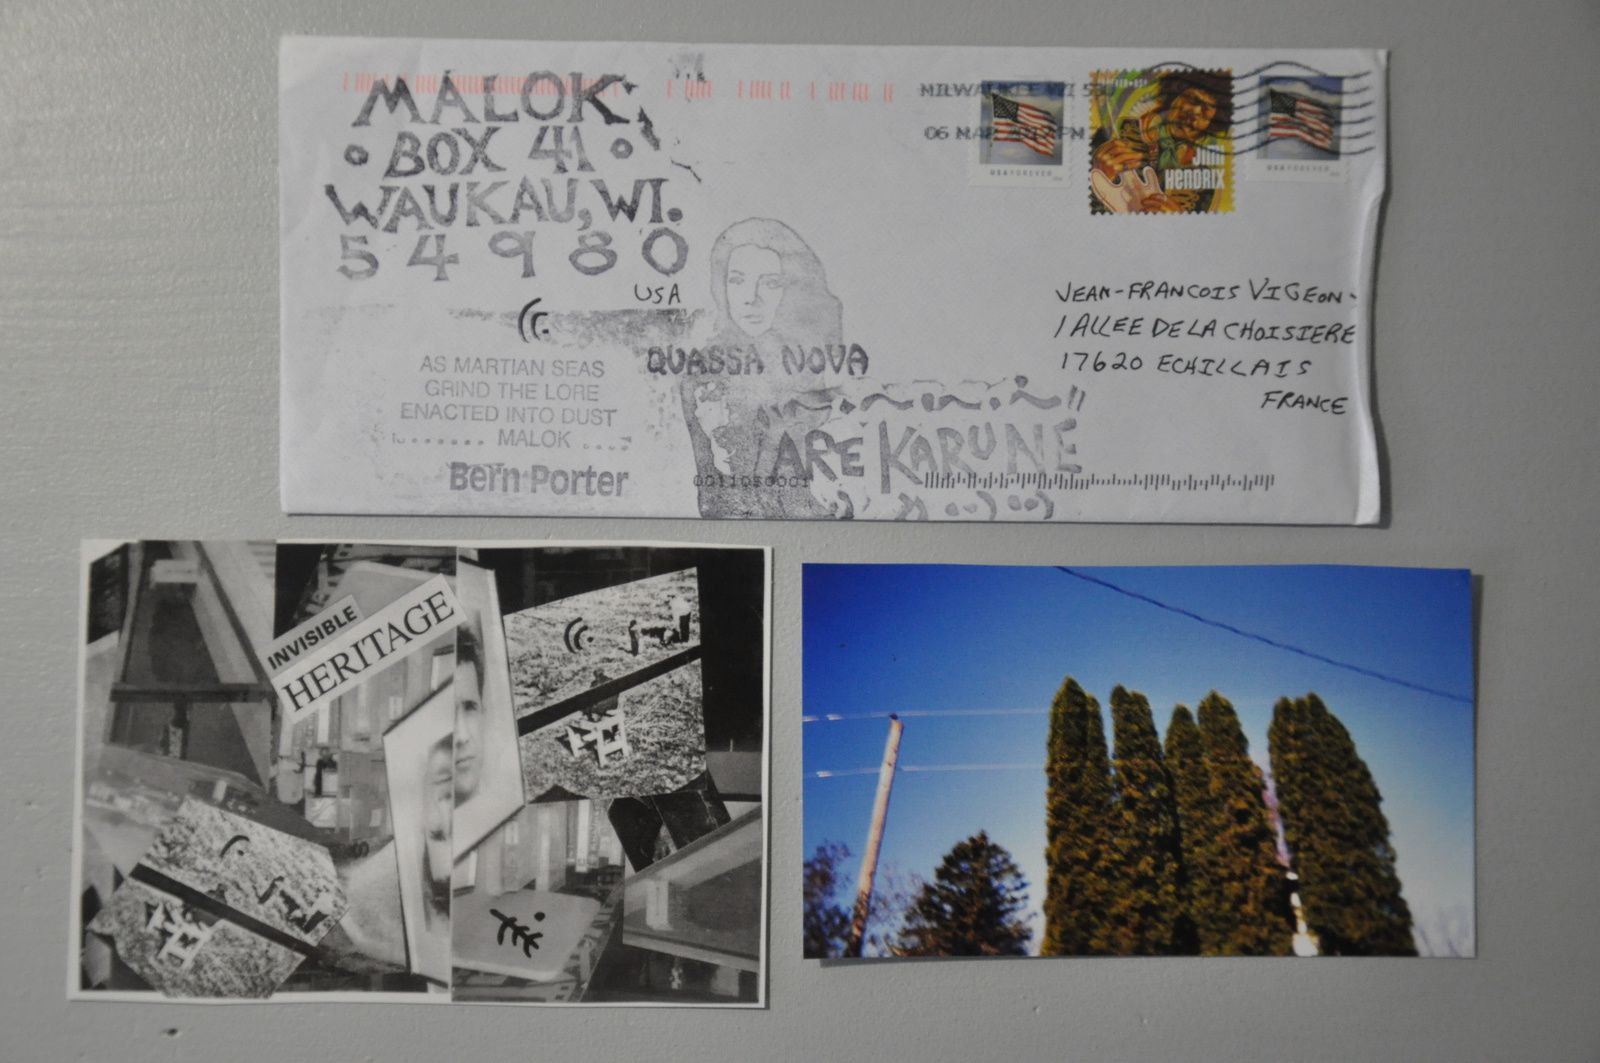 Reçu des ETATS-UNIS! Thank you very much to MALOK!!!!!!!!!!!!!!!!!